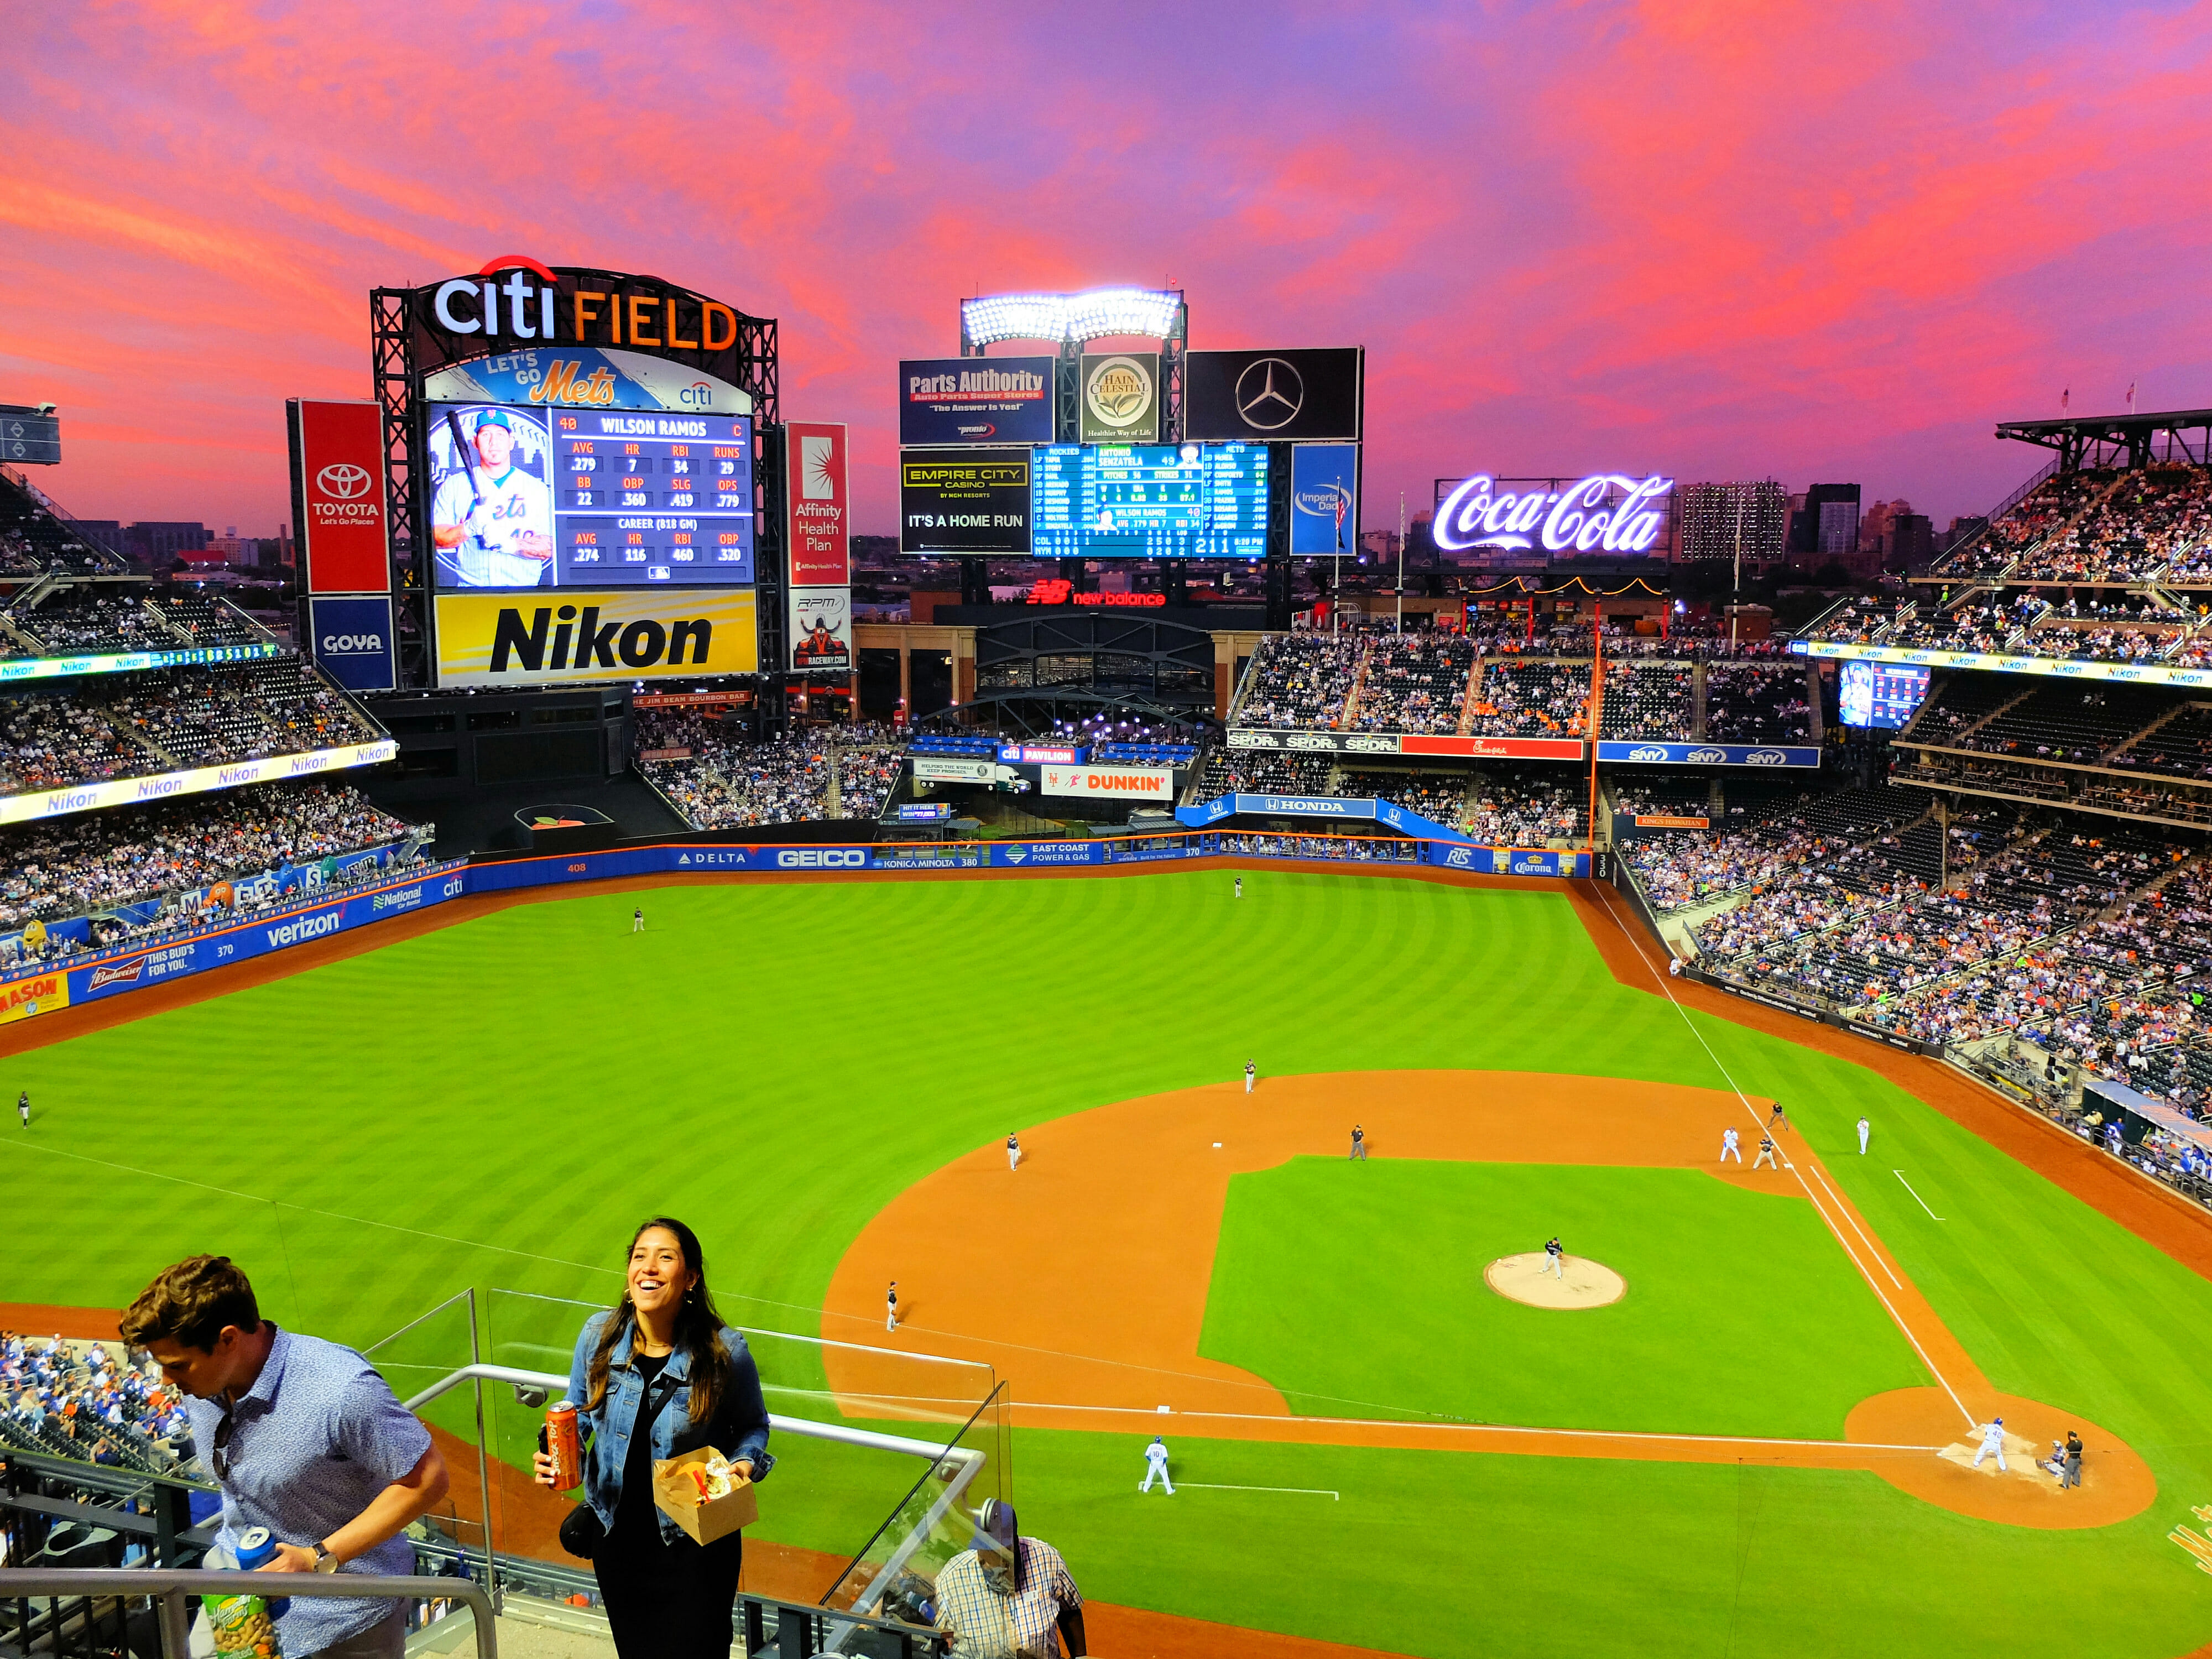 New York Mets Baseball Game at Sunset – High Quality Wallpaper